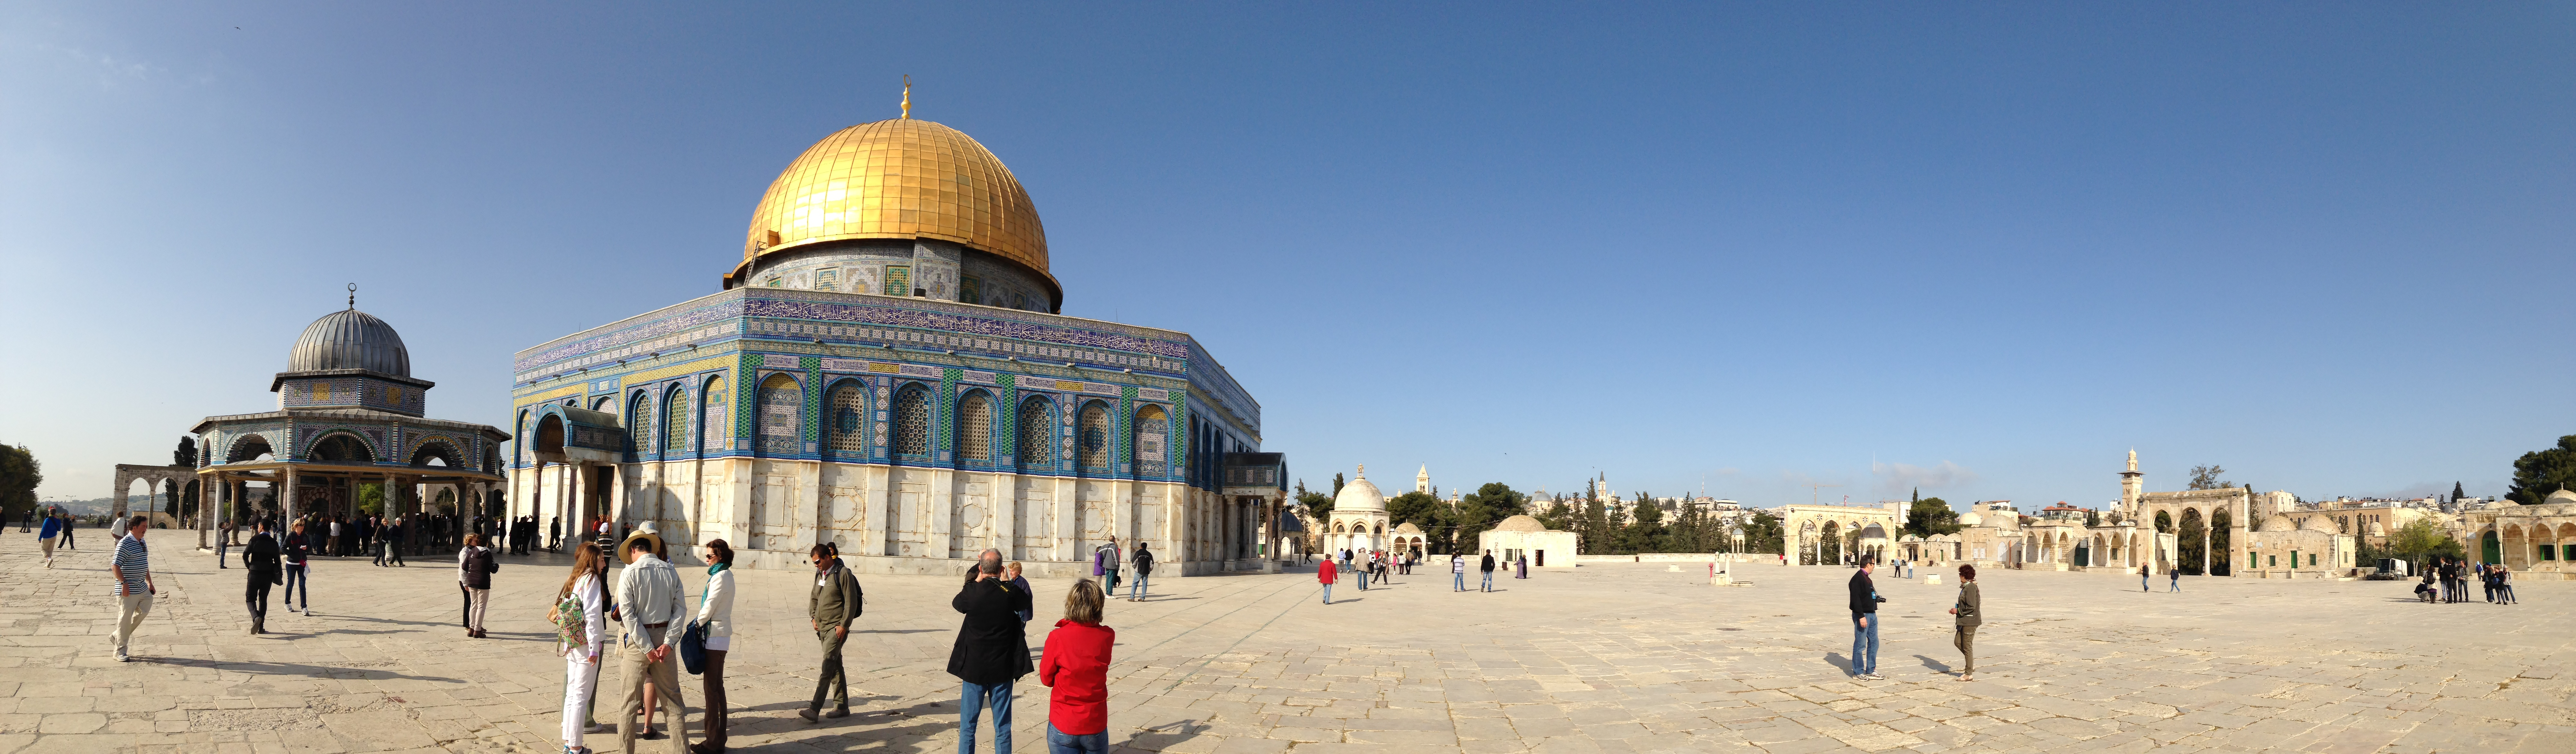 2014 dome of the rock pano